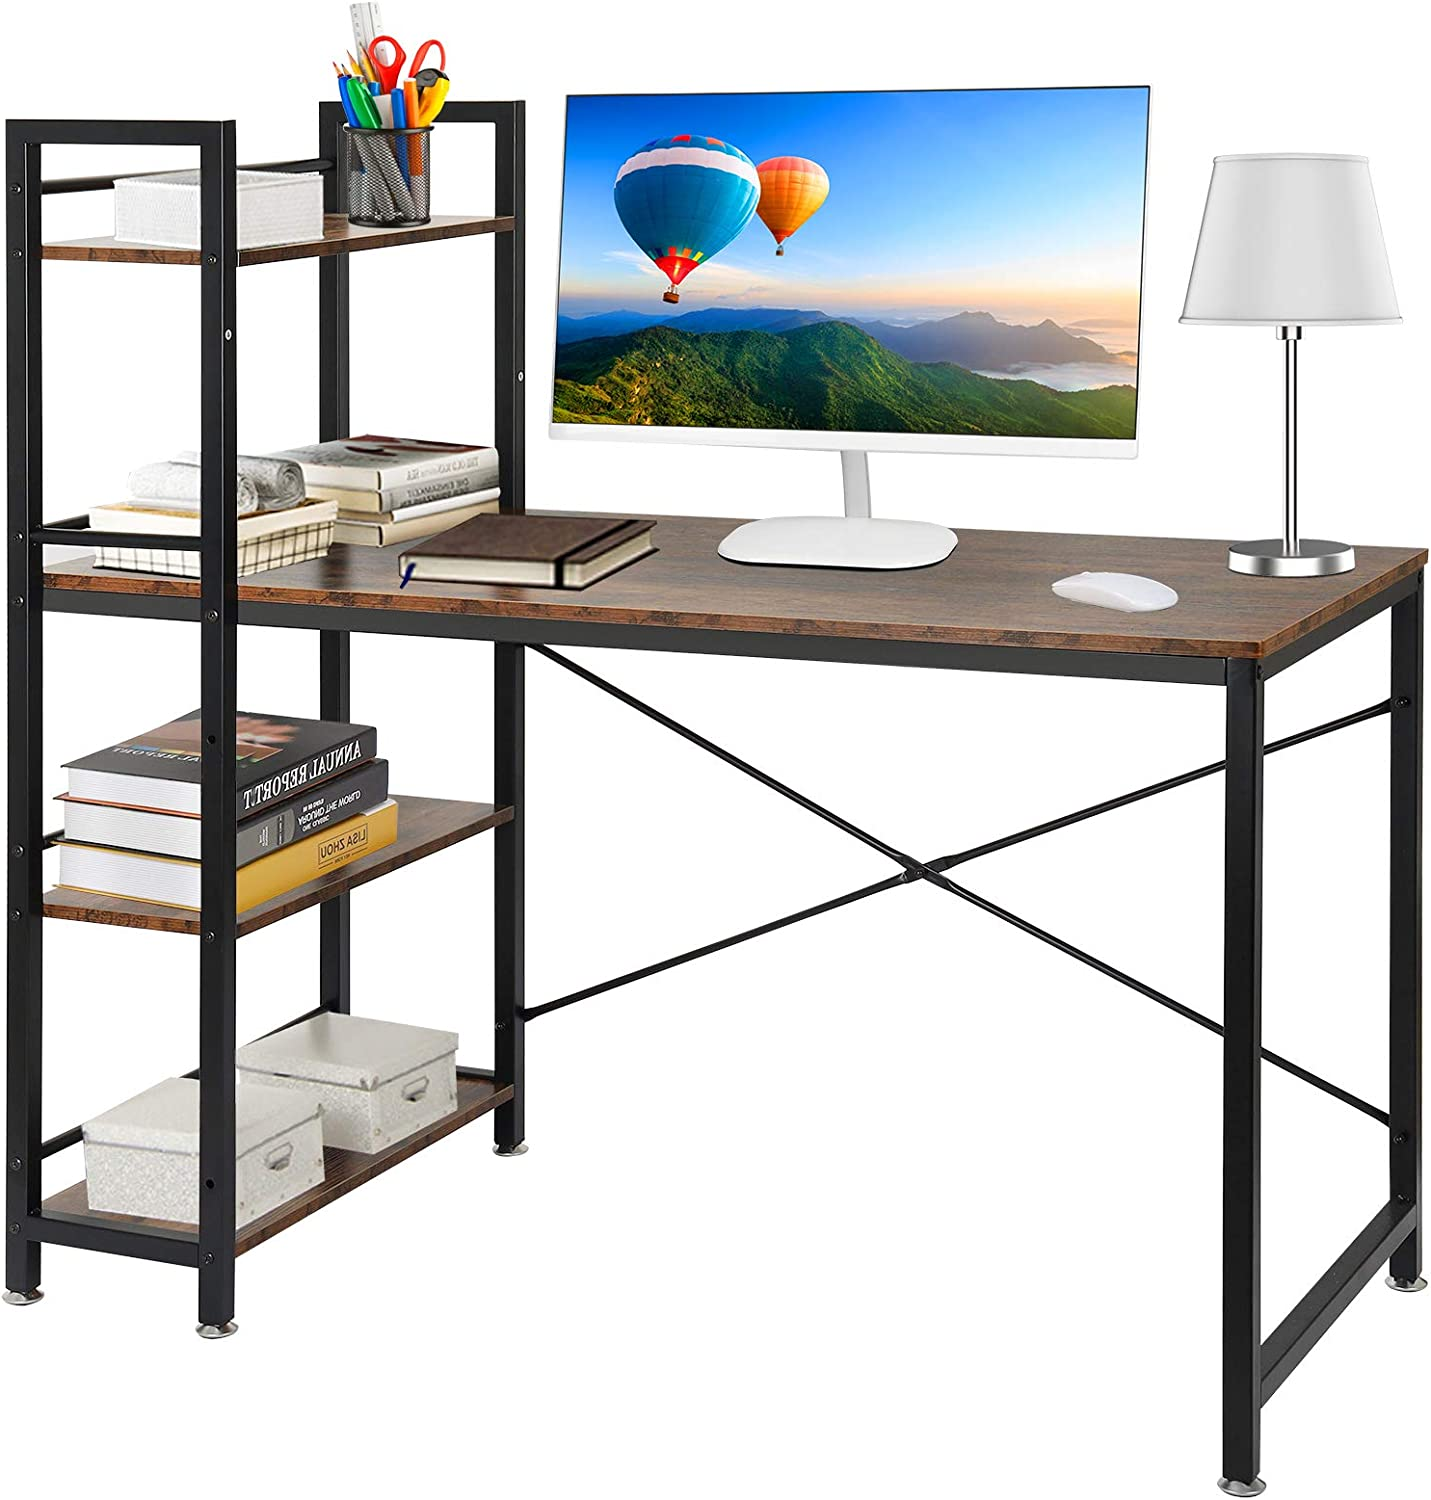 Computer Desk with Storage Shelves Al sold out. Writing Table Study Free shipping / New Home for